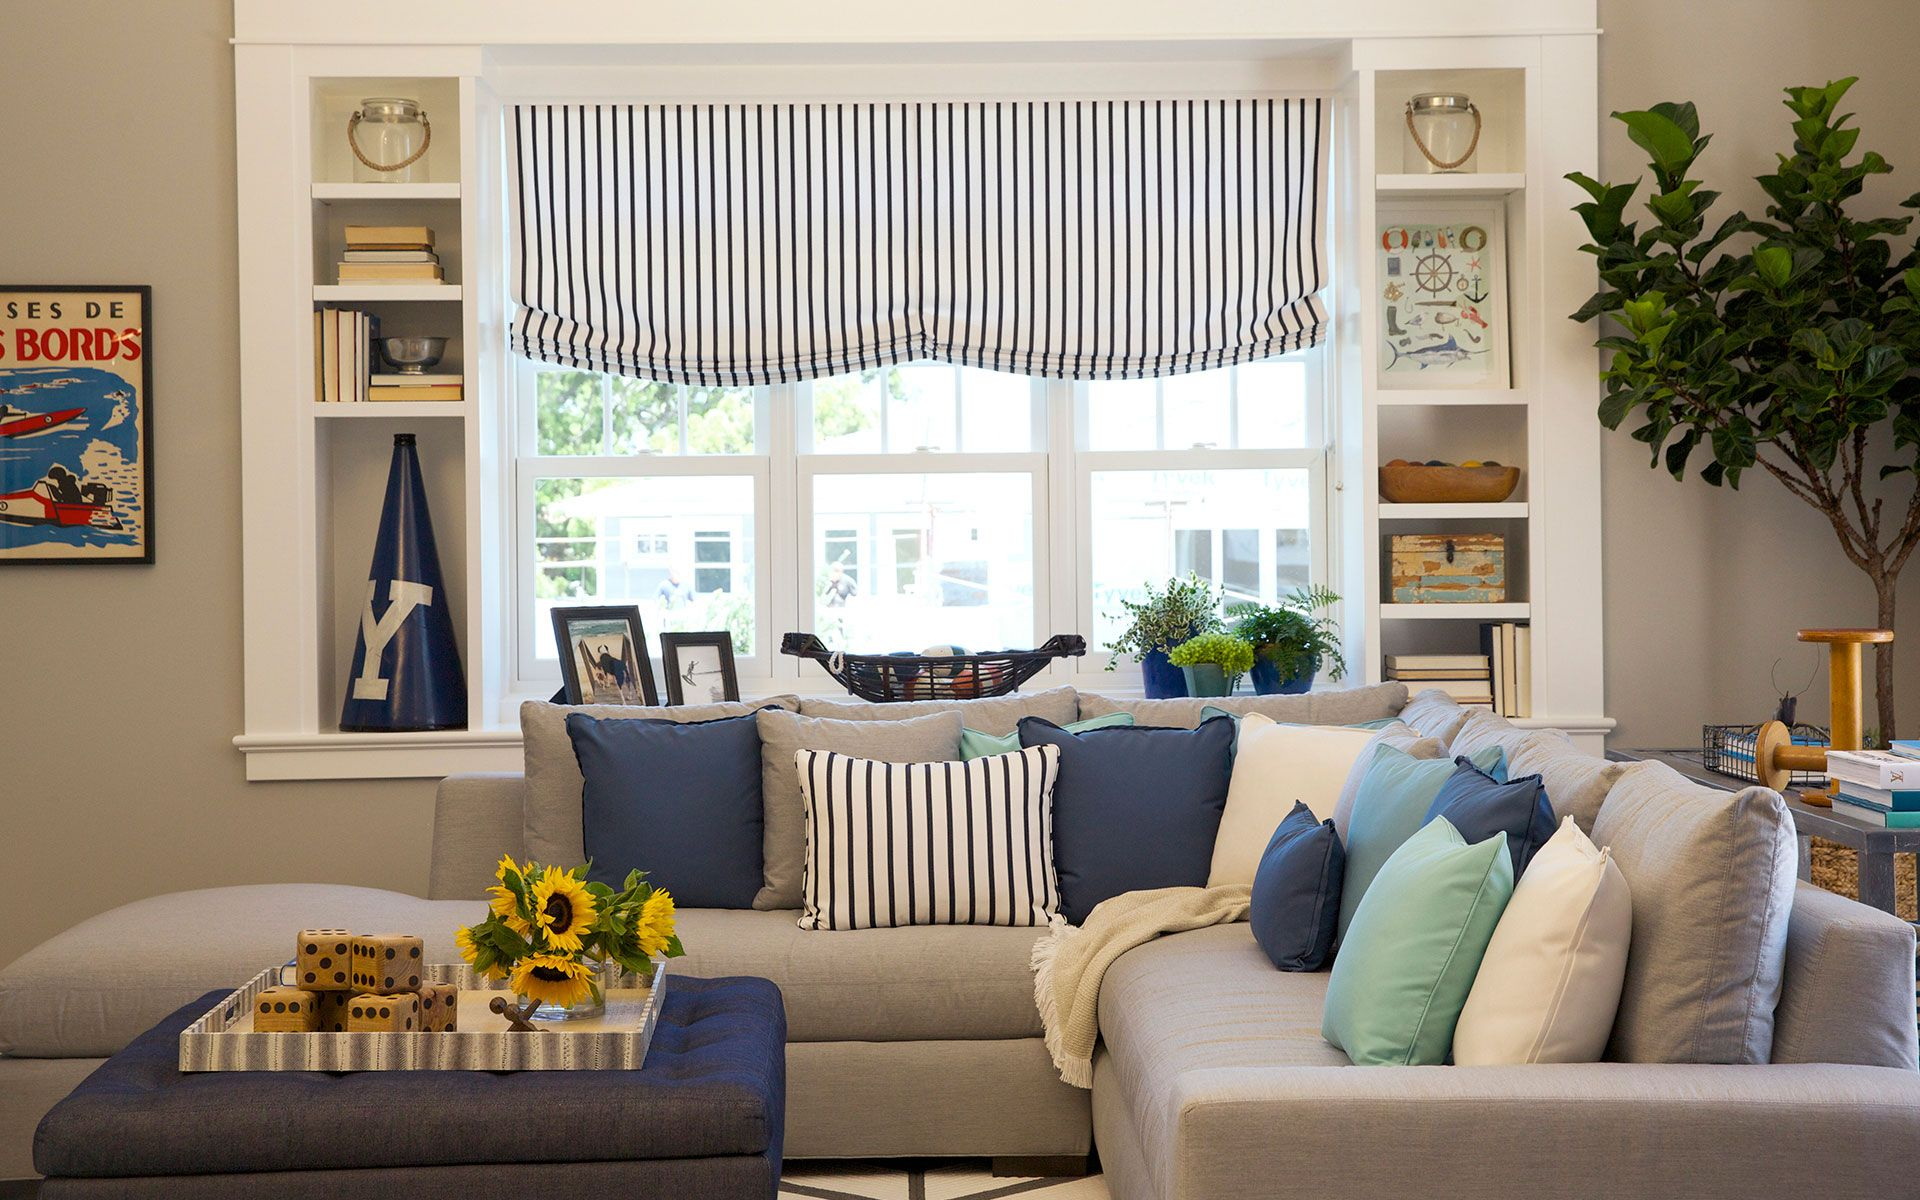 Attractive Recreate The Beautiful Blues And Grays Of This Room With Sunbrella Fabrics  In Canvas Granite,